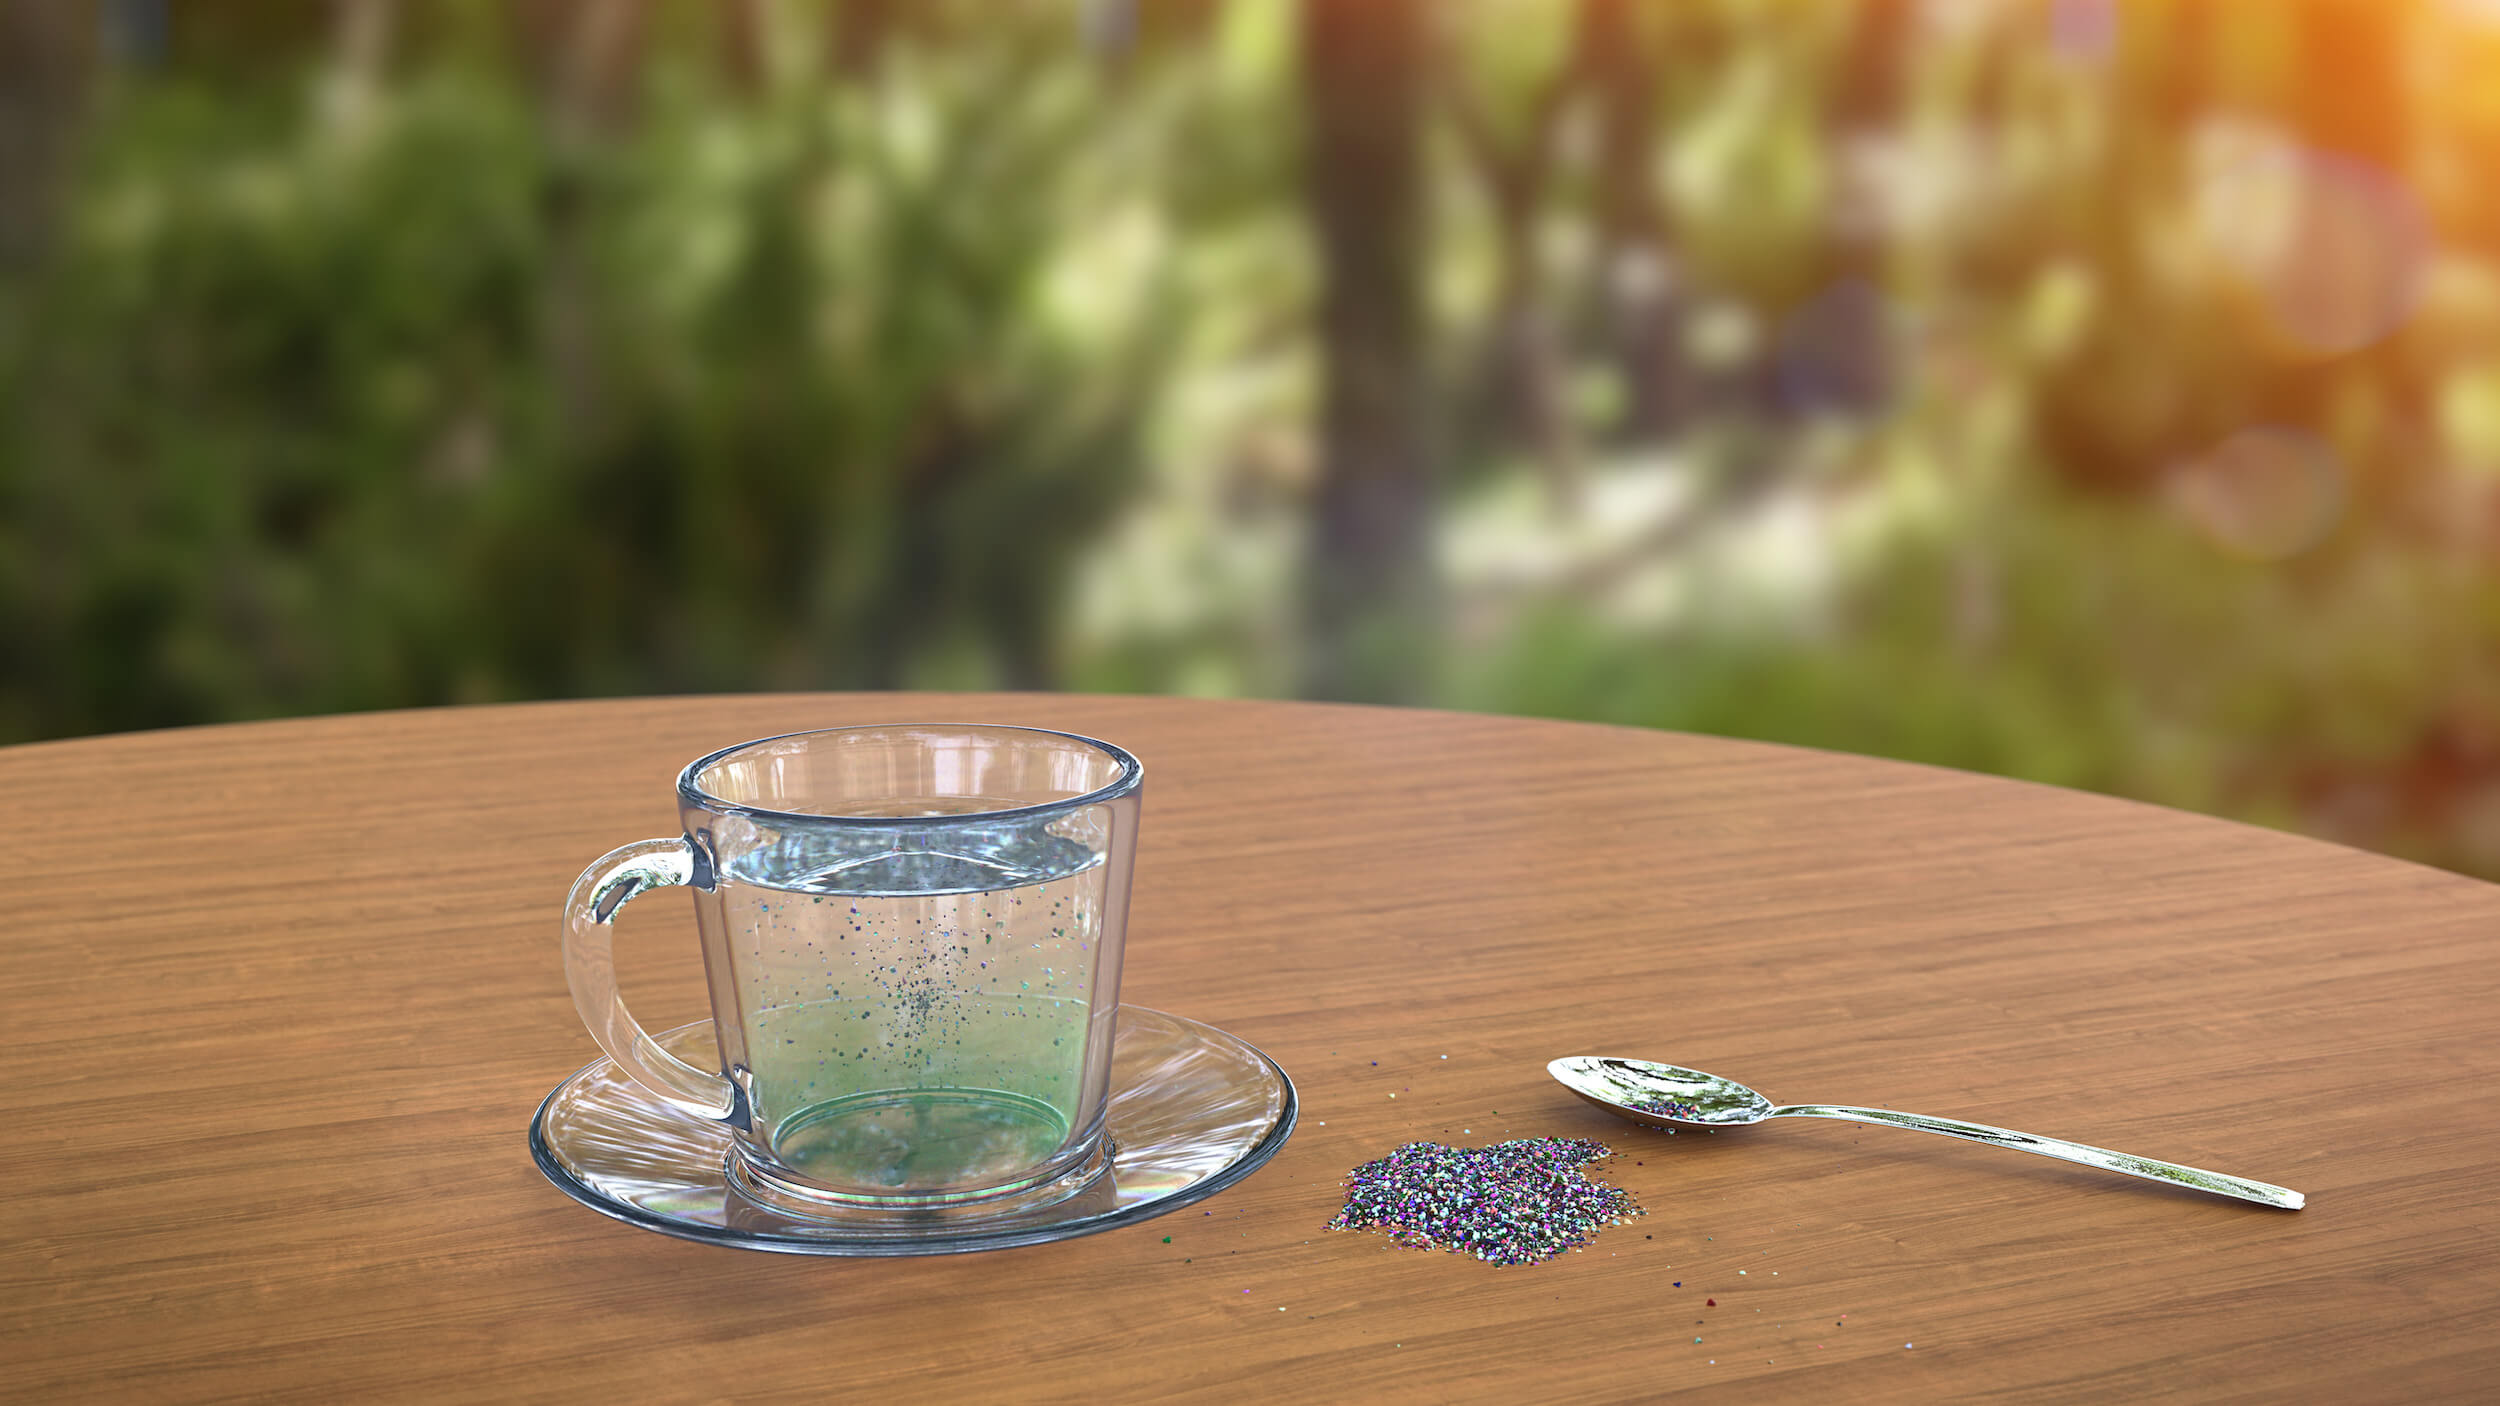 Microplastics in a cup of tea.